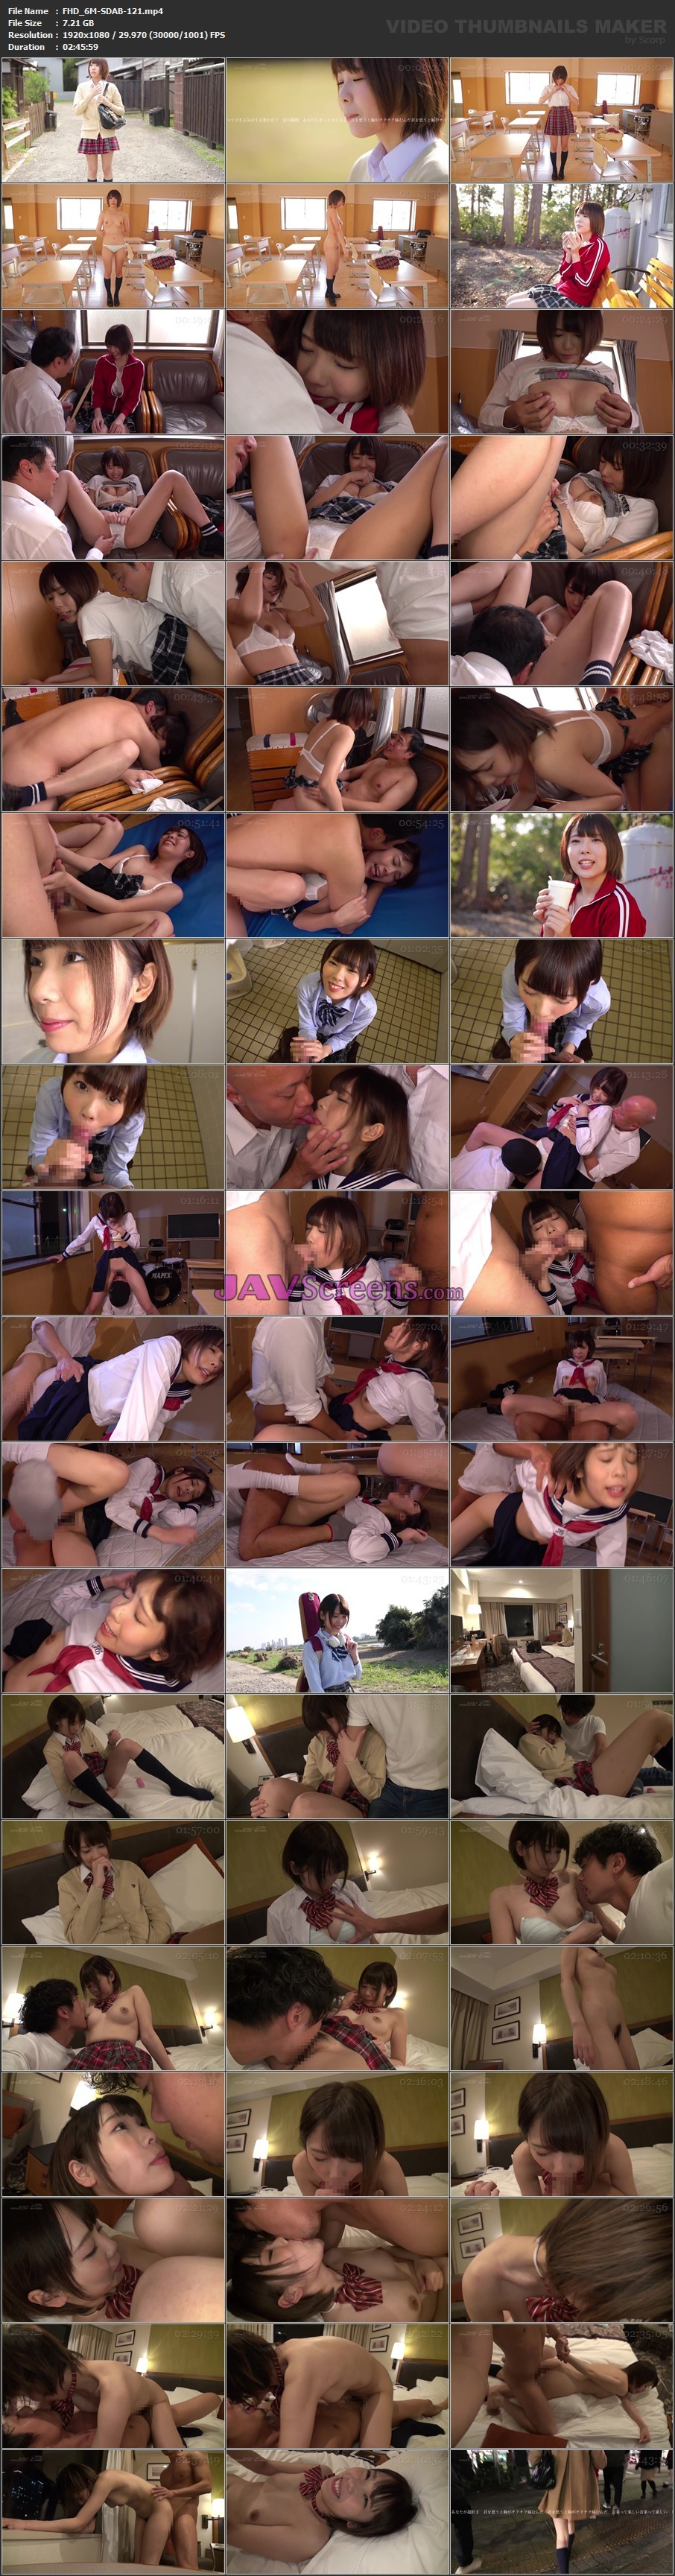 SDAB-121.jpg - JAV Screenshot